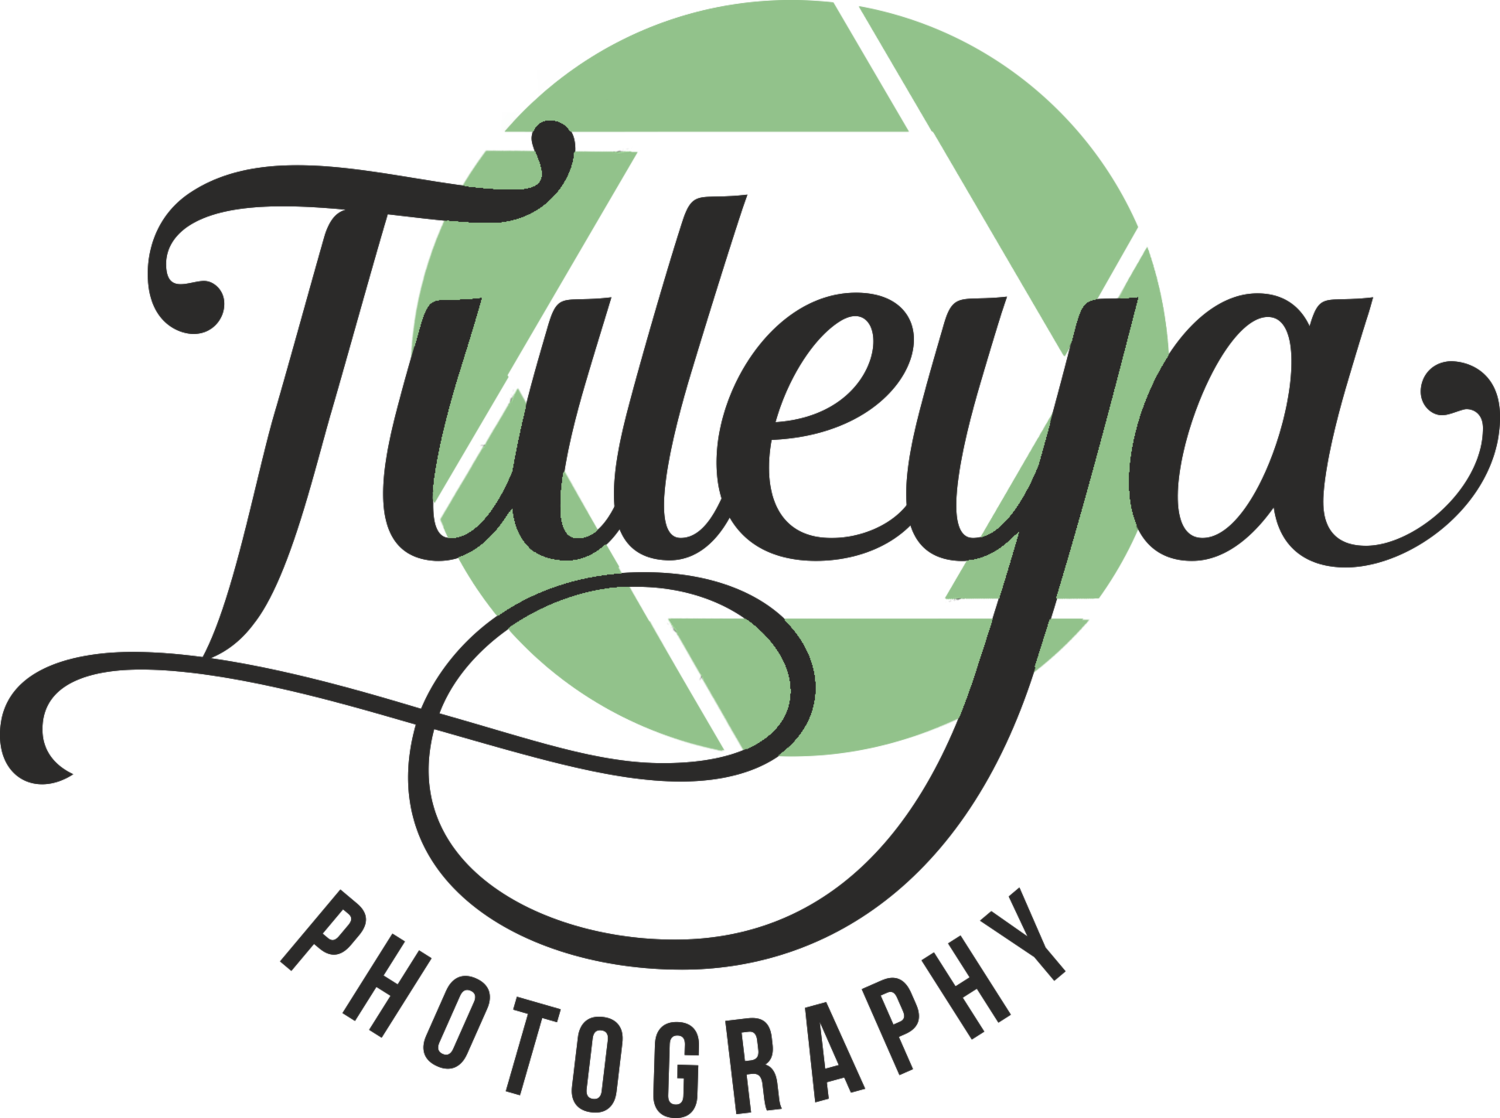 Tuleya Photography